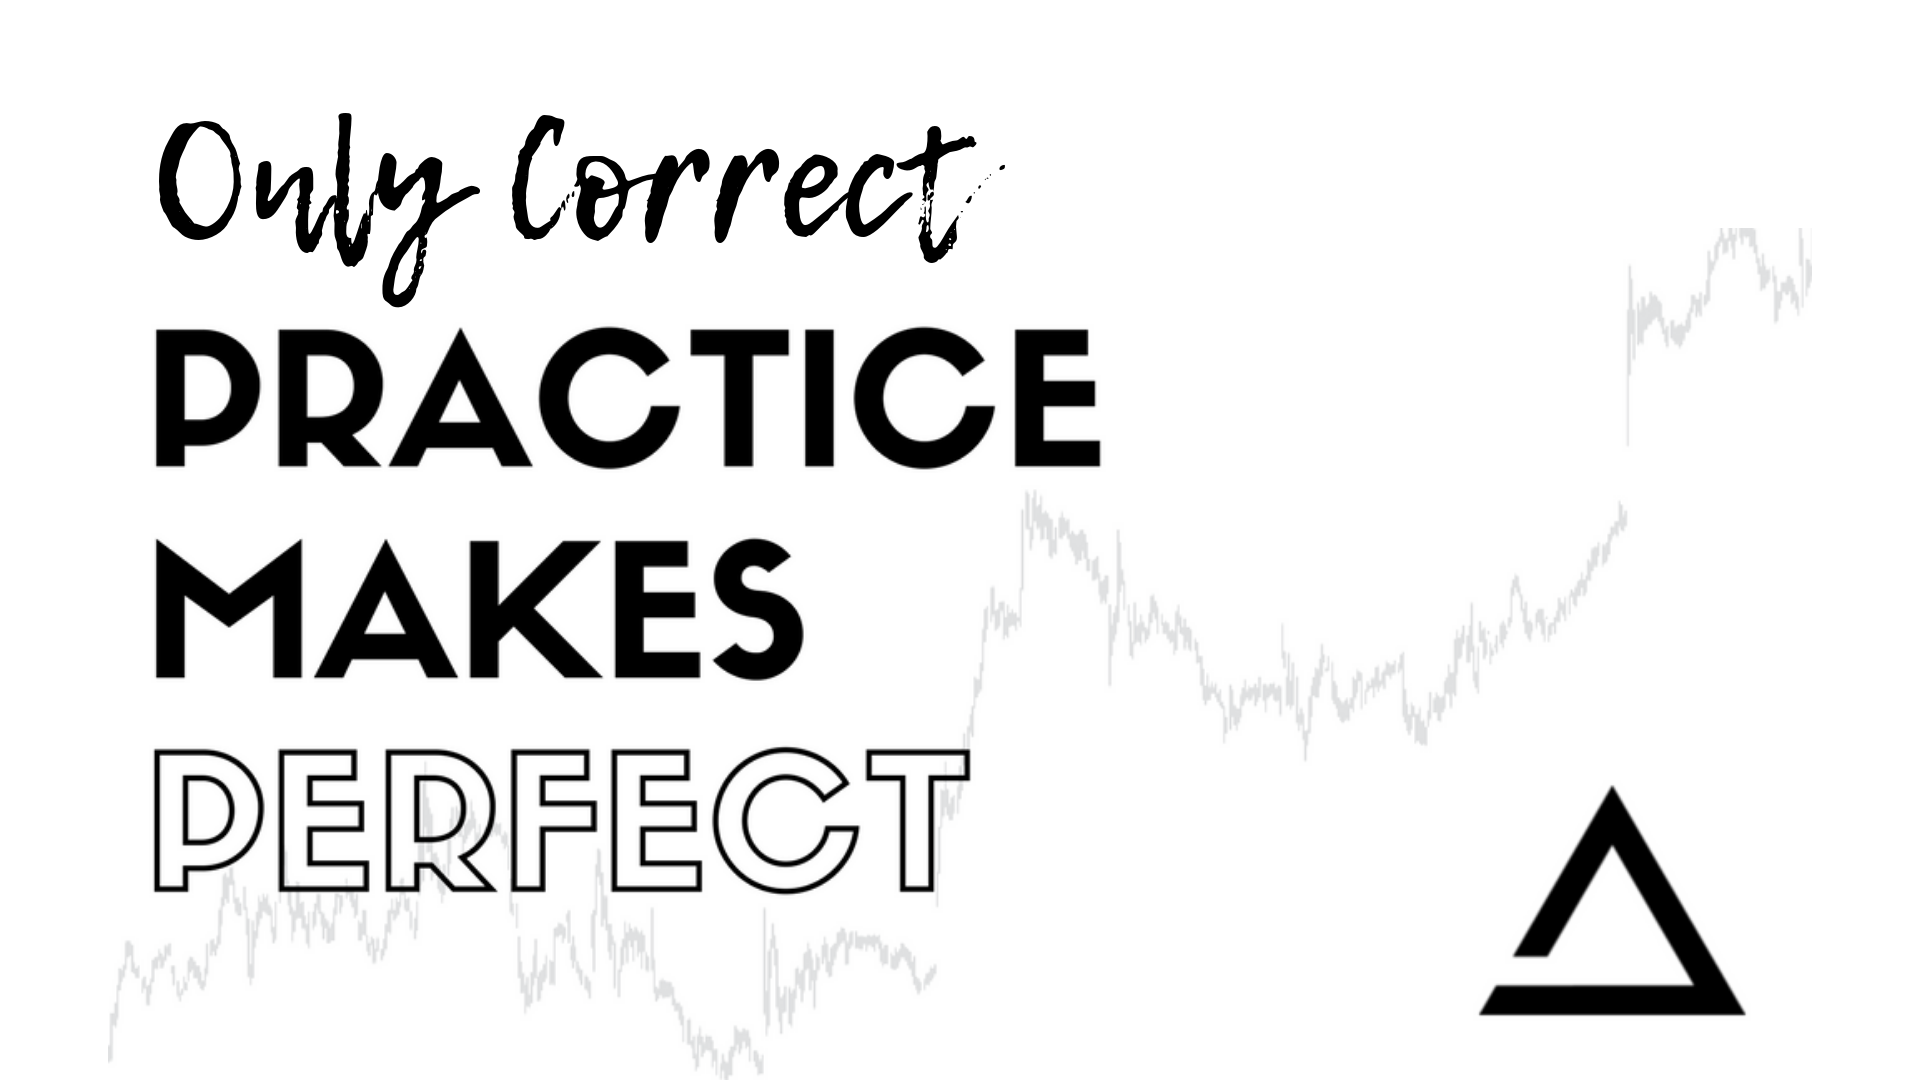 only correct practice makes perfect text over a stock chart with trading template logo